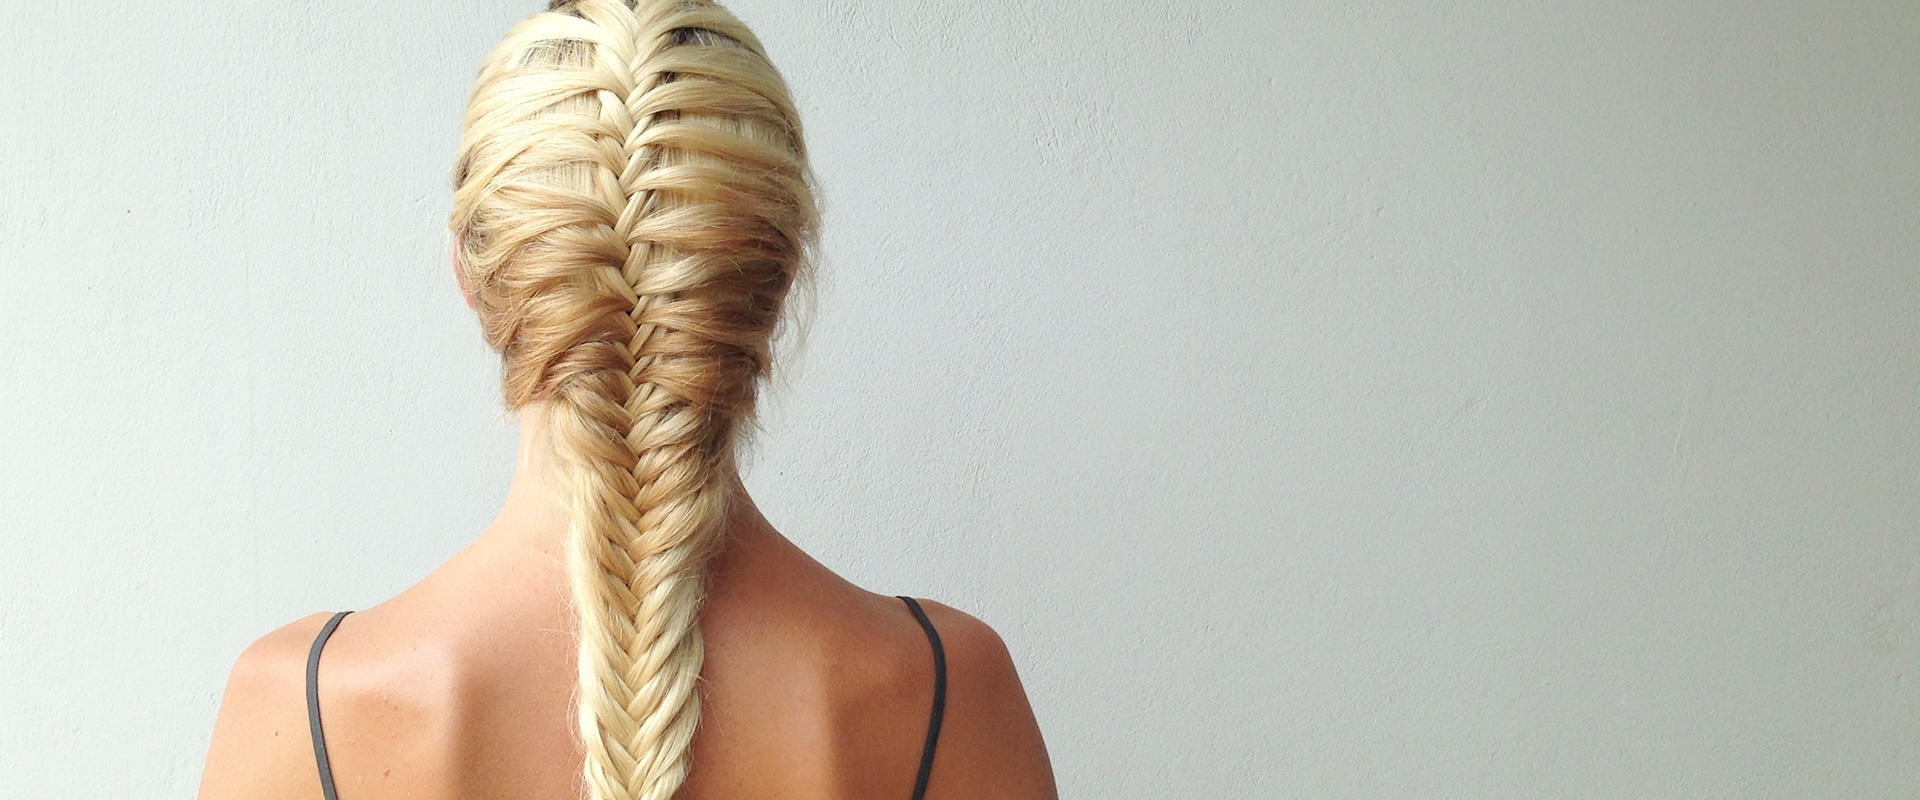 neat-and-nice-mermaid-braids-hairstyles